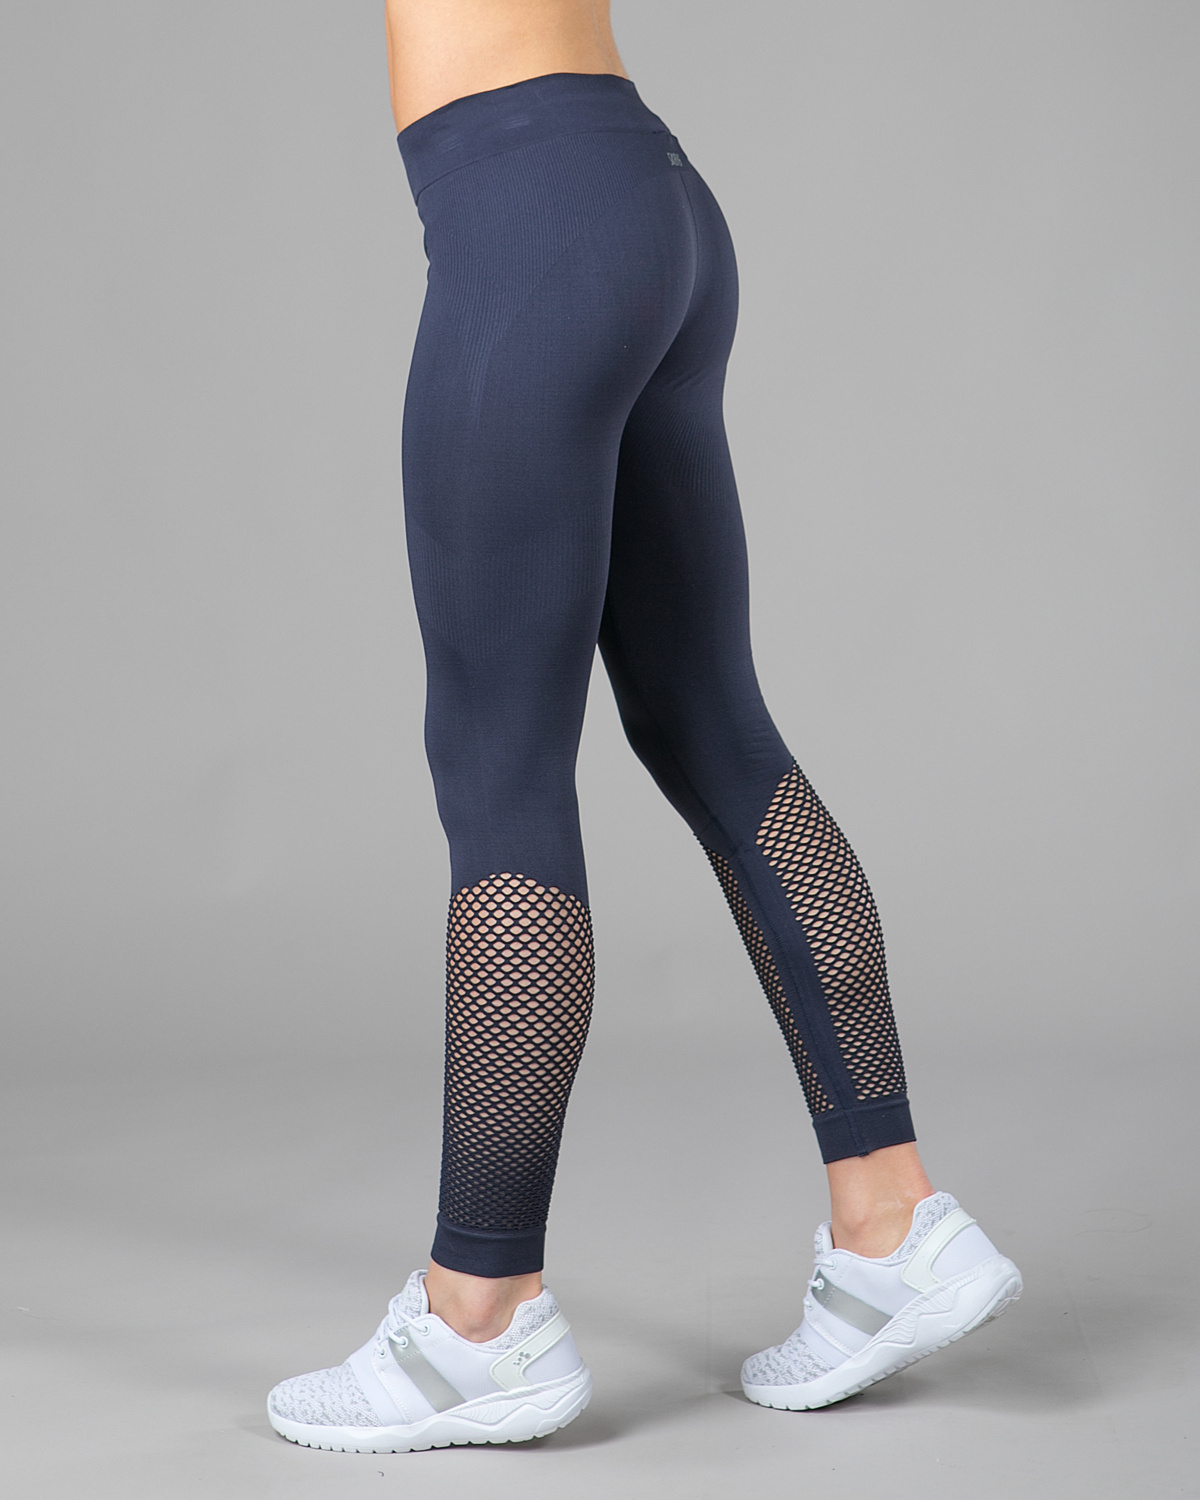 Skiny-SK8Y6-Seamless-Tights-Dark-Saphire